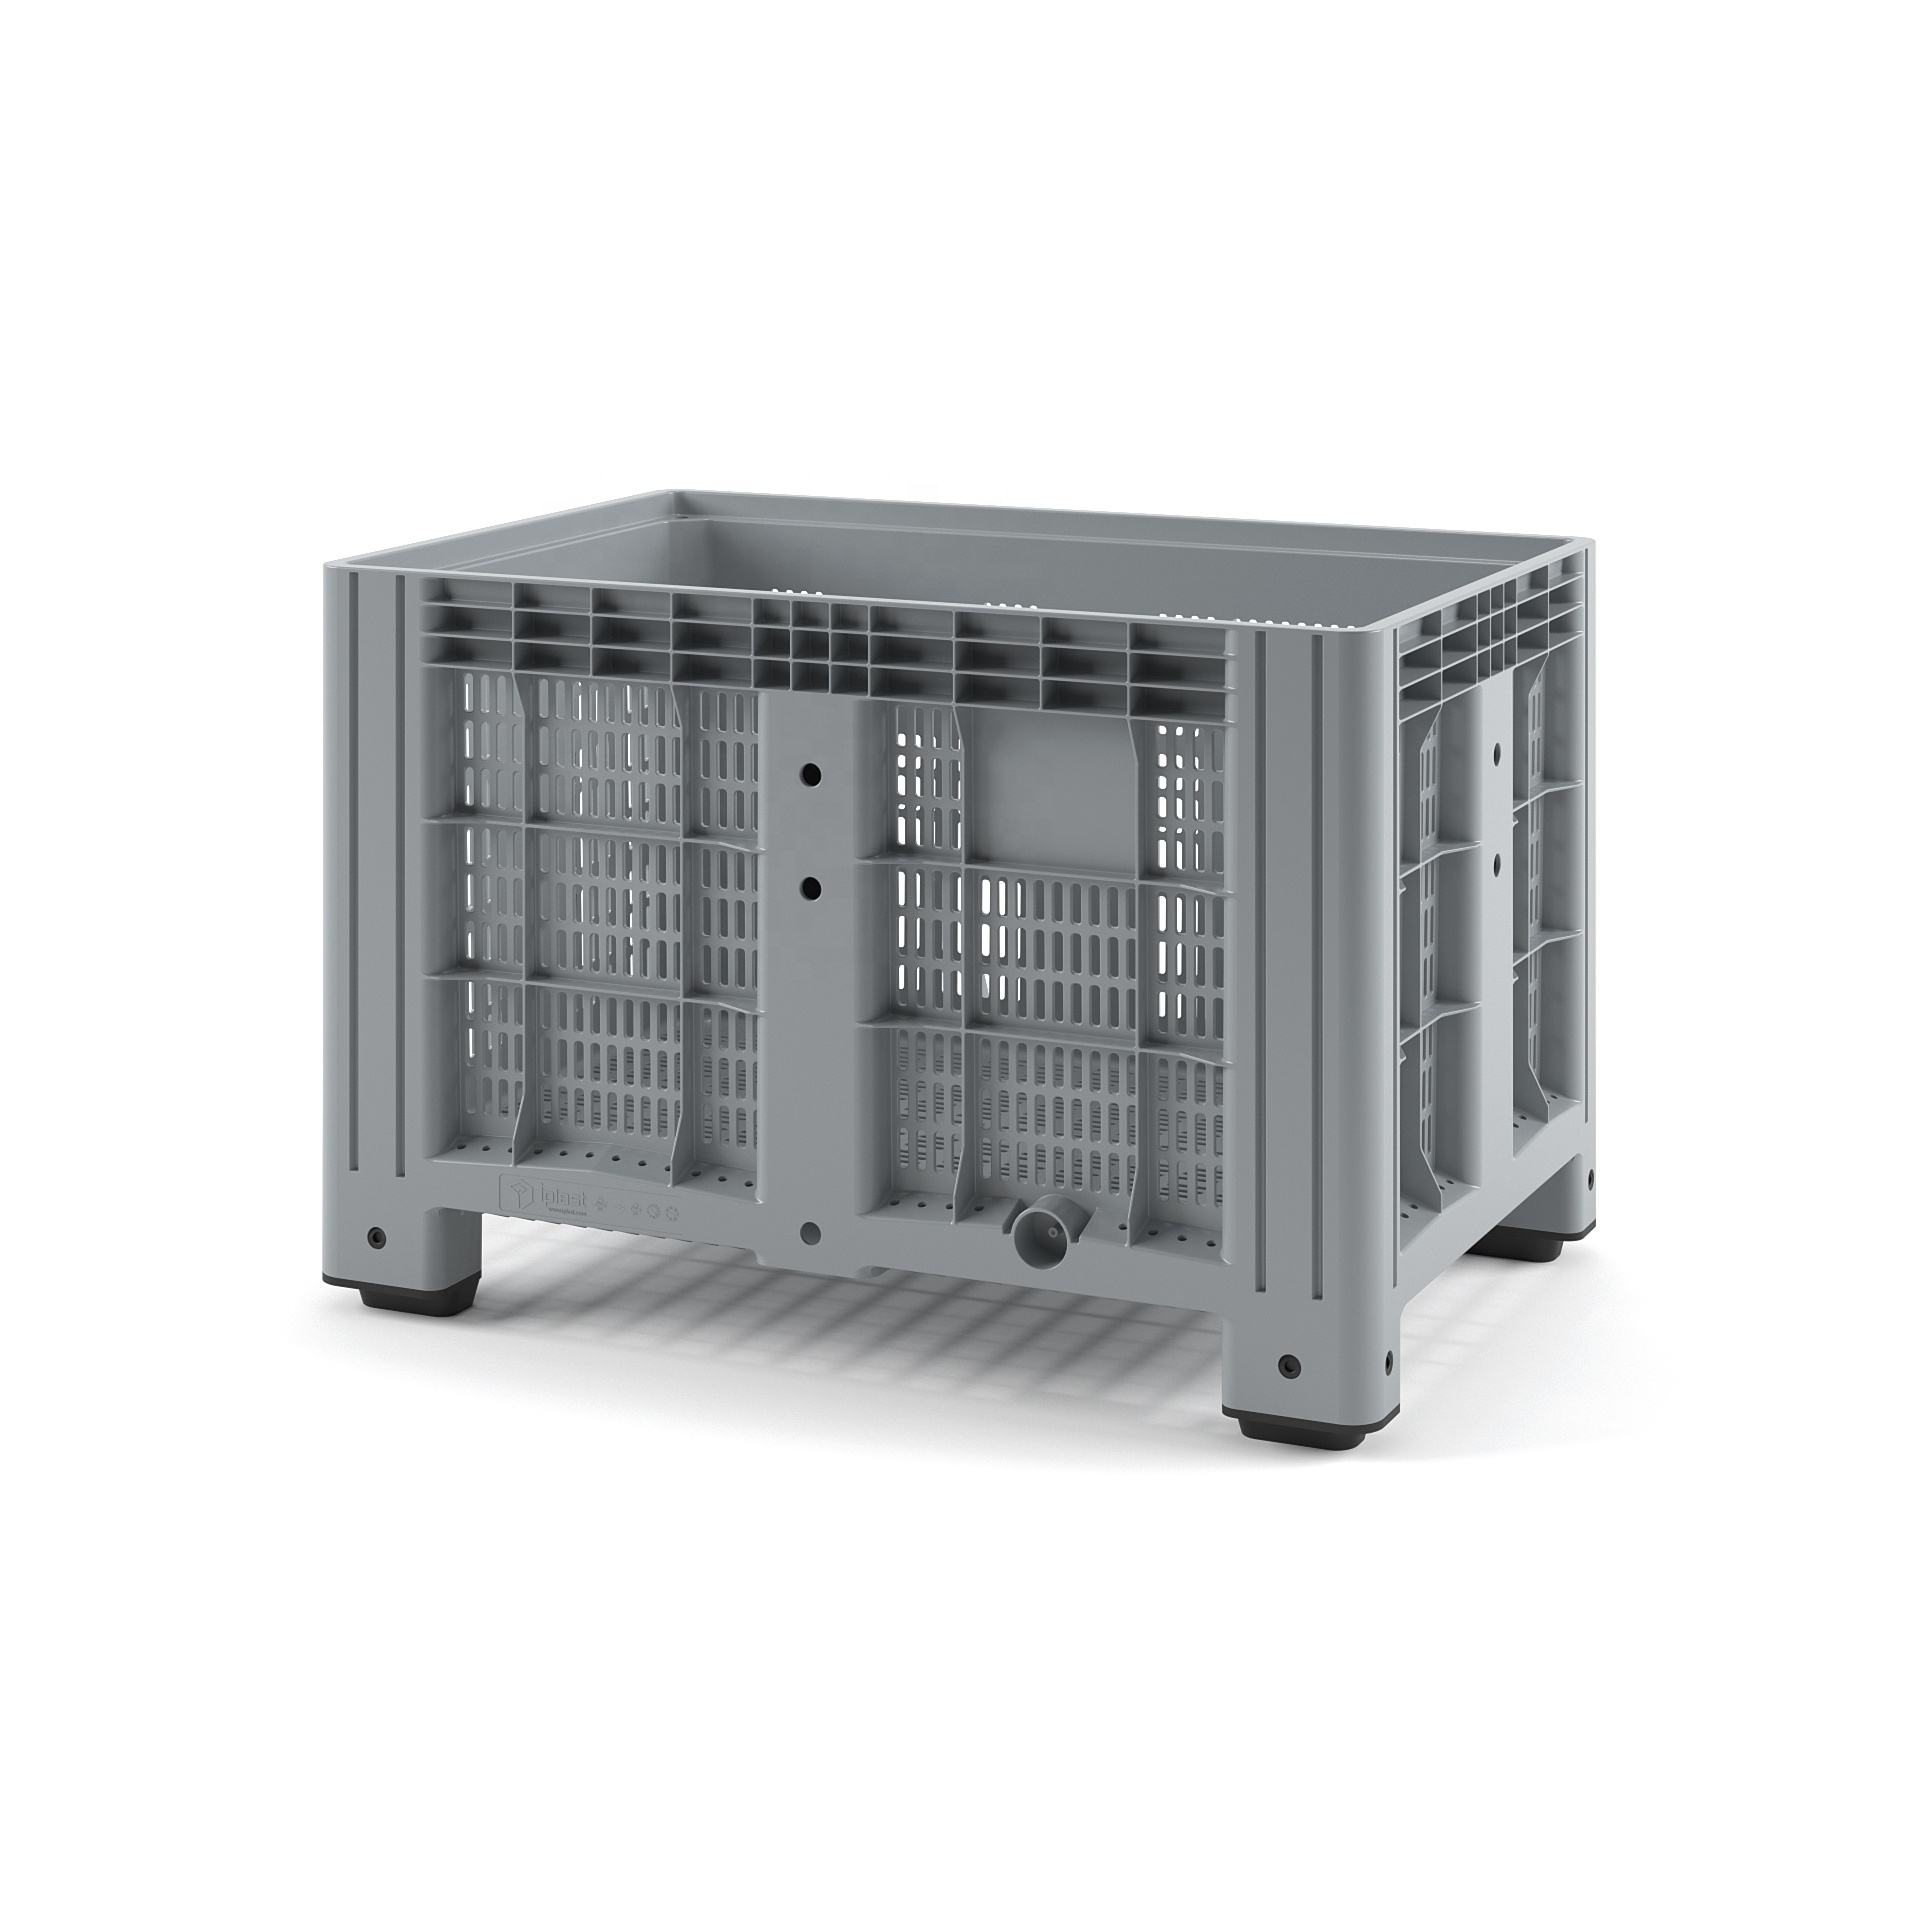 Plastic IBOX Container 1200x800 (perforated, with legs) HDPE Box Storage For Packaging And Effective Transportation